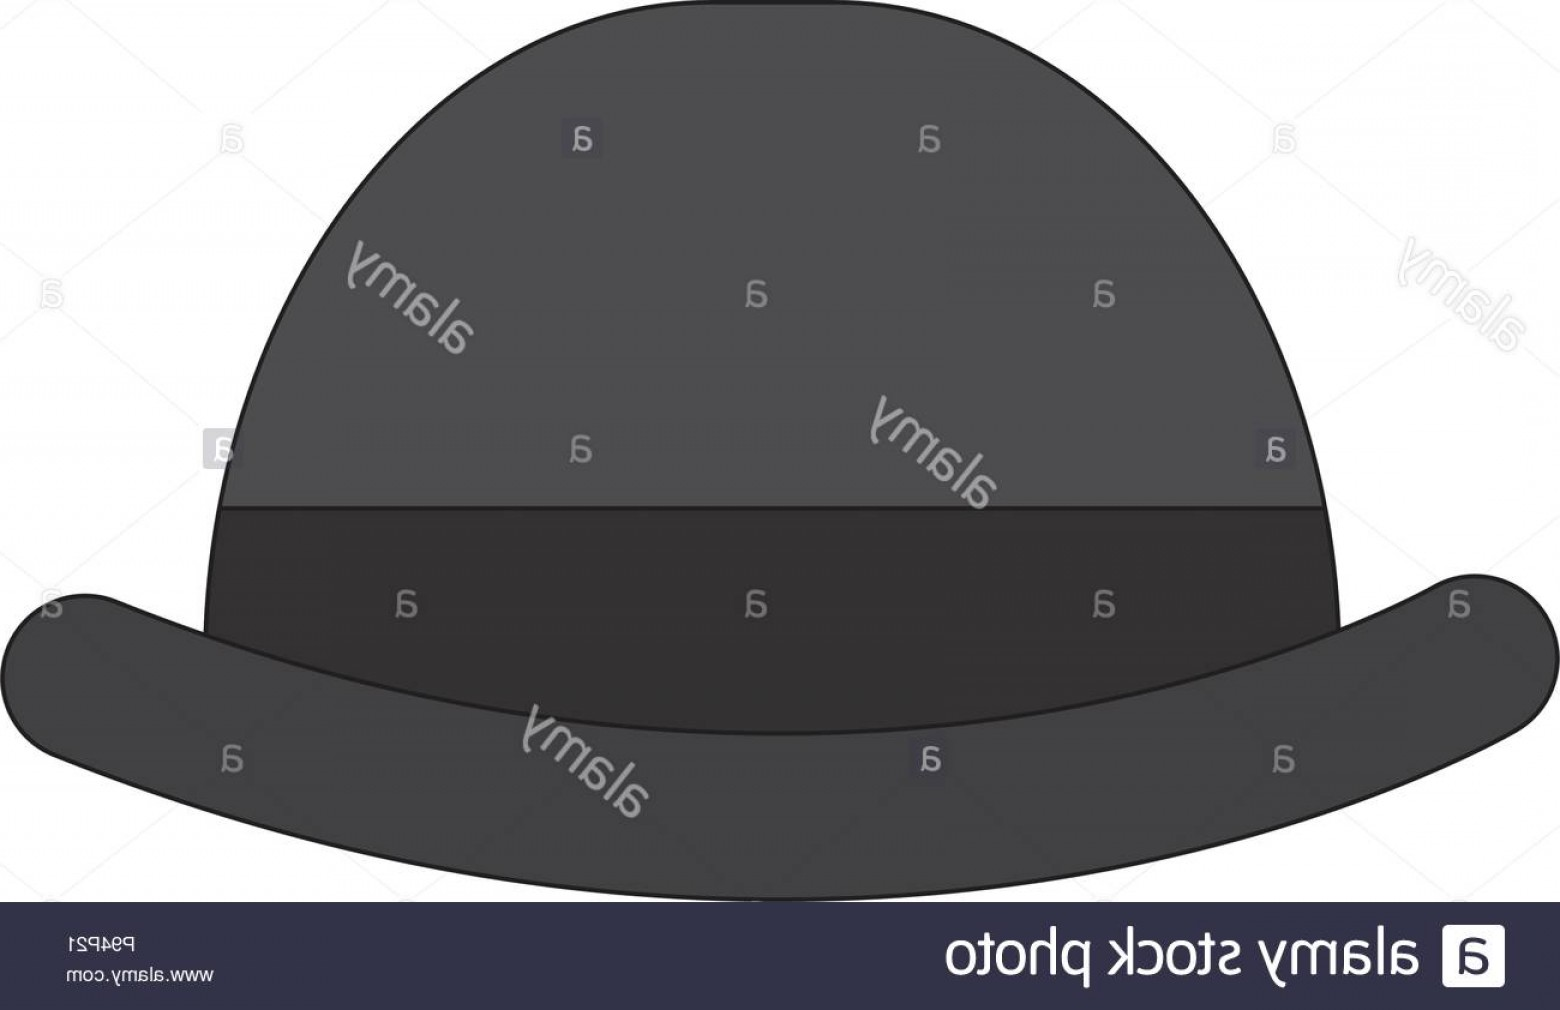 Bowler Hat Vector: English Bowler Hat Elegant Accessory Image